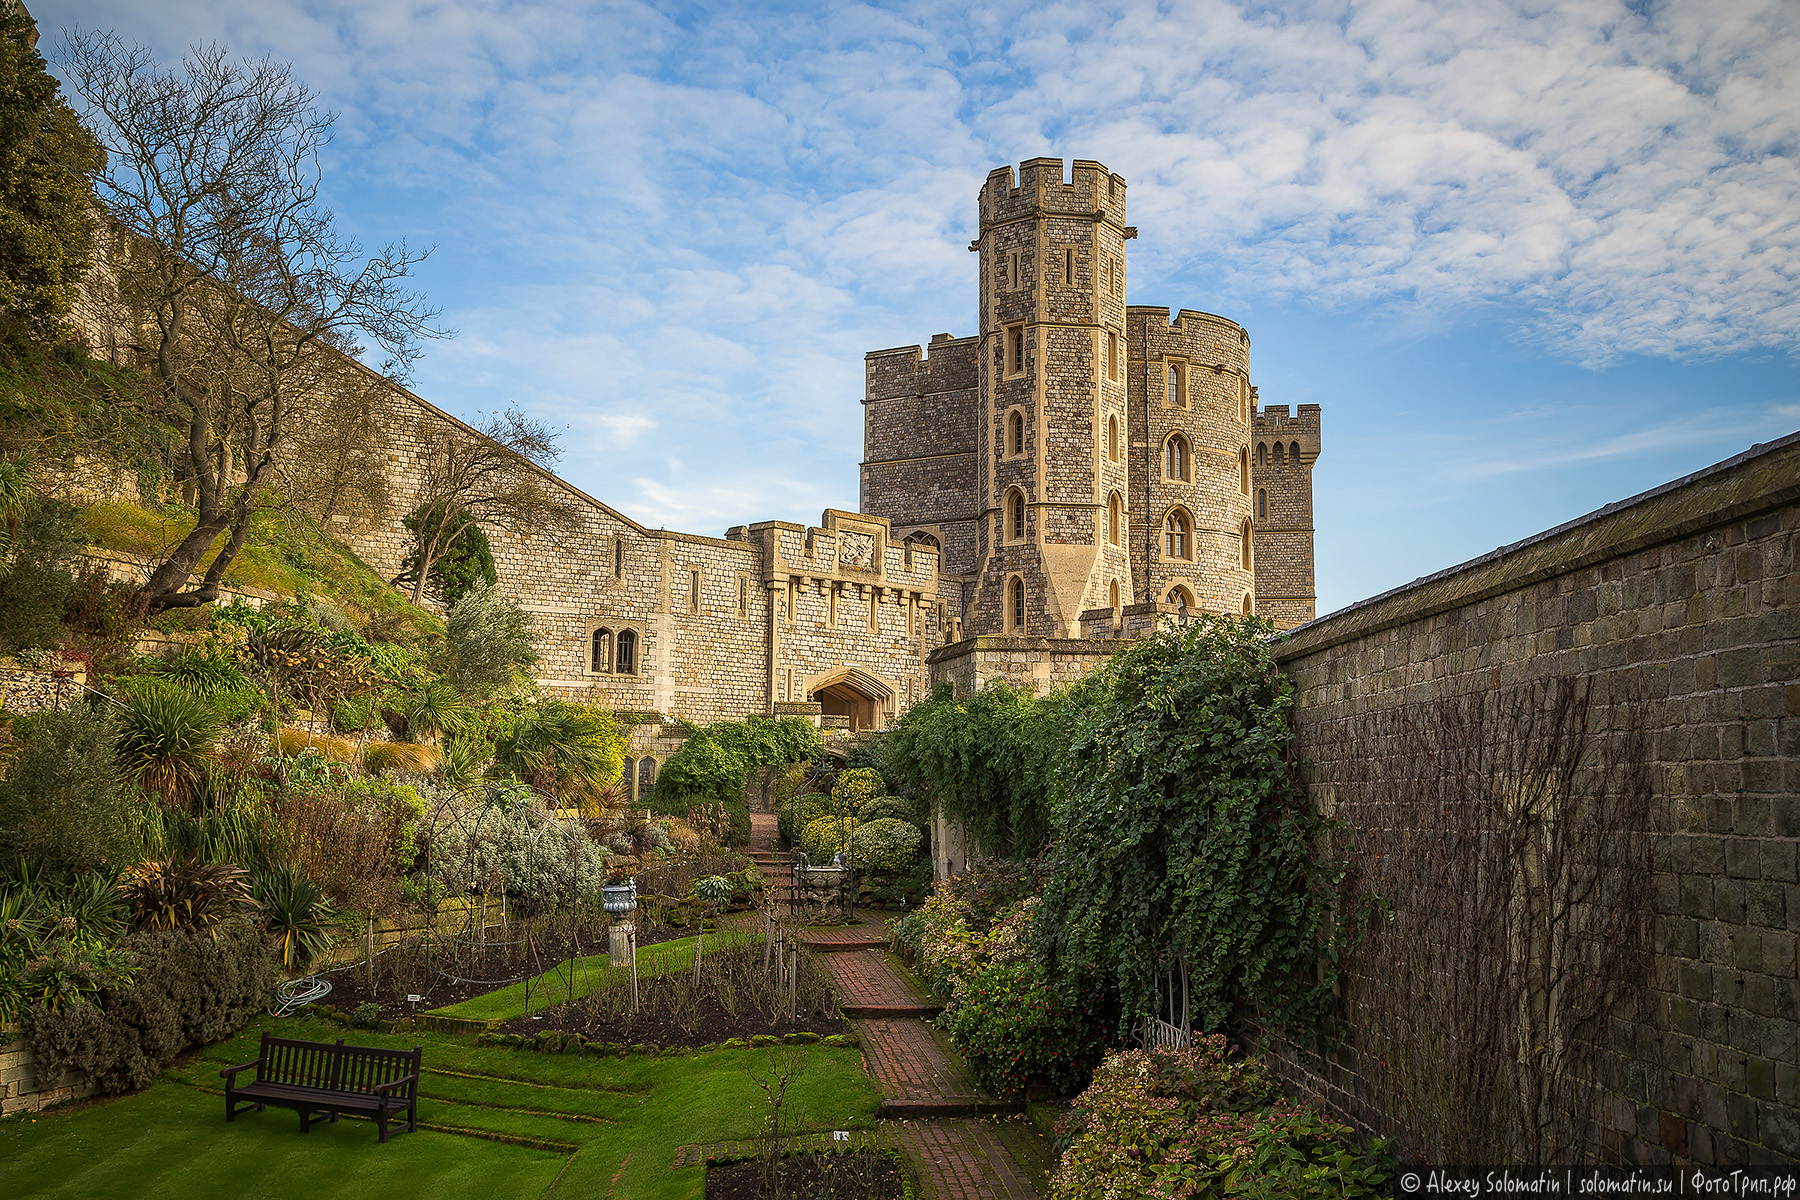 windsor coursework 2 Windsor is a historic market town and unparished area in the royal borough of windsor and maidenhead in berkshire, england it is widely known as the site of windsor castle , one of the official residences of the british royal family.